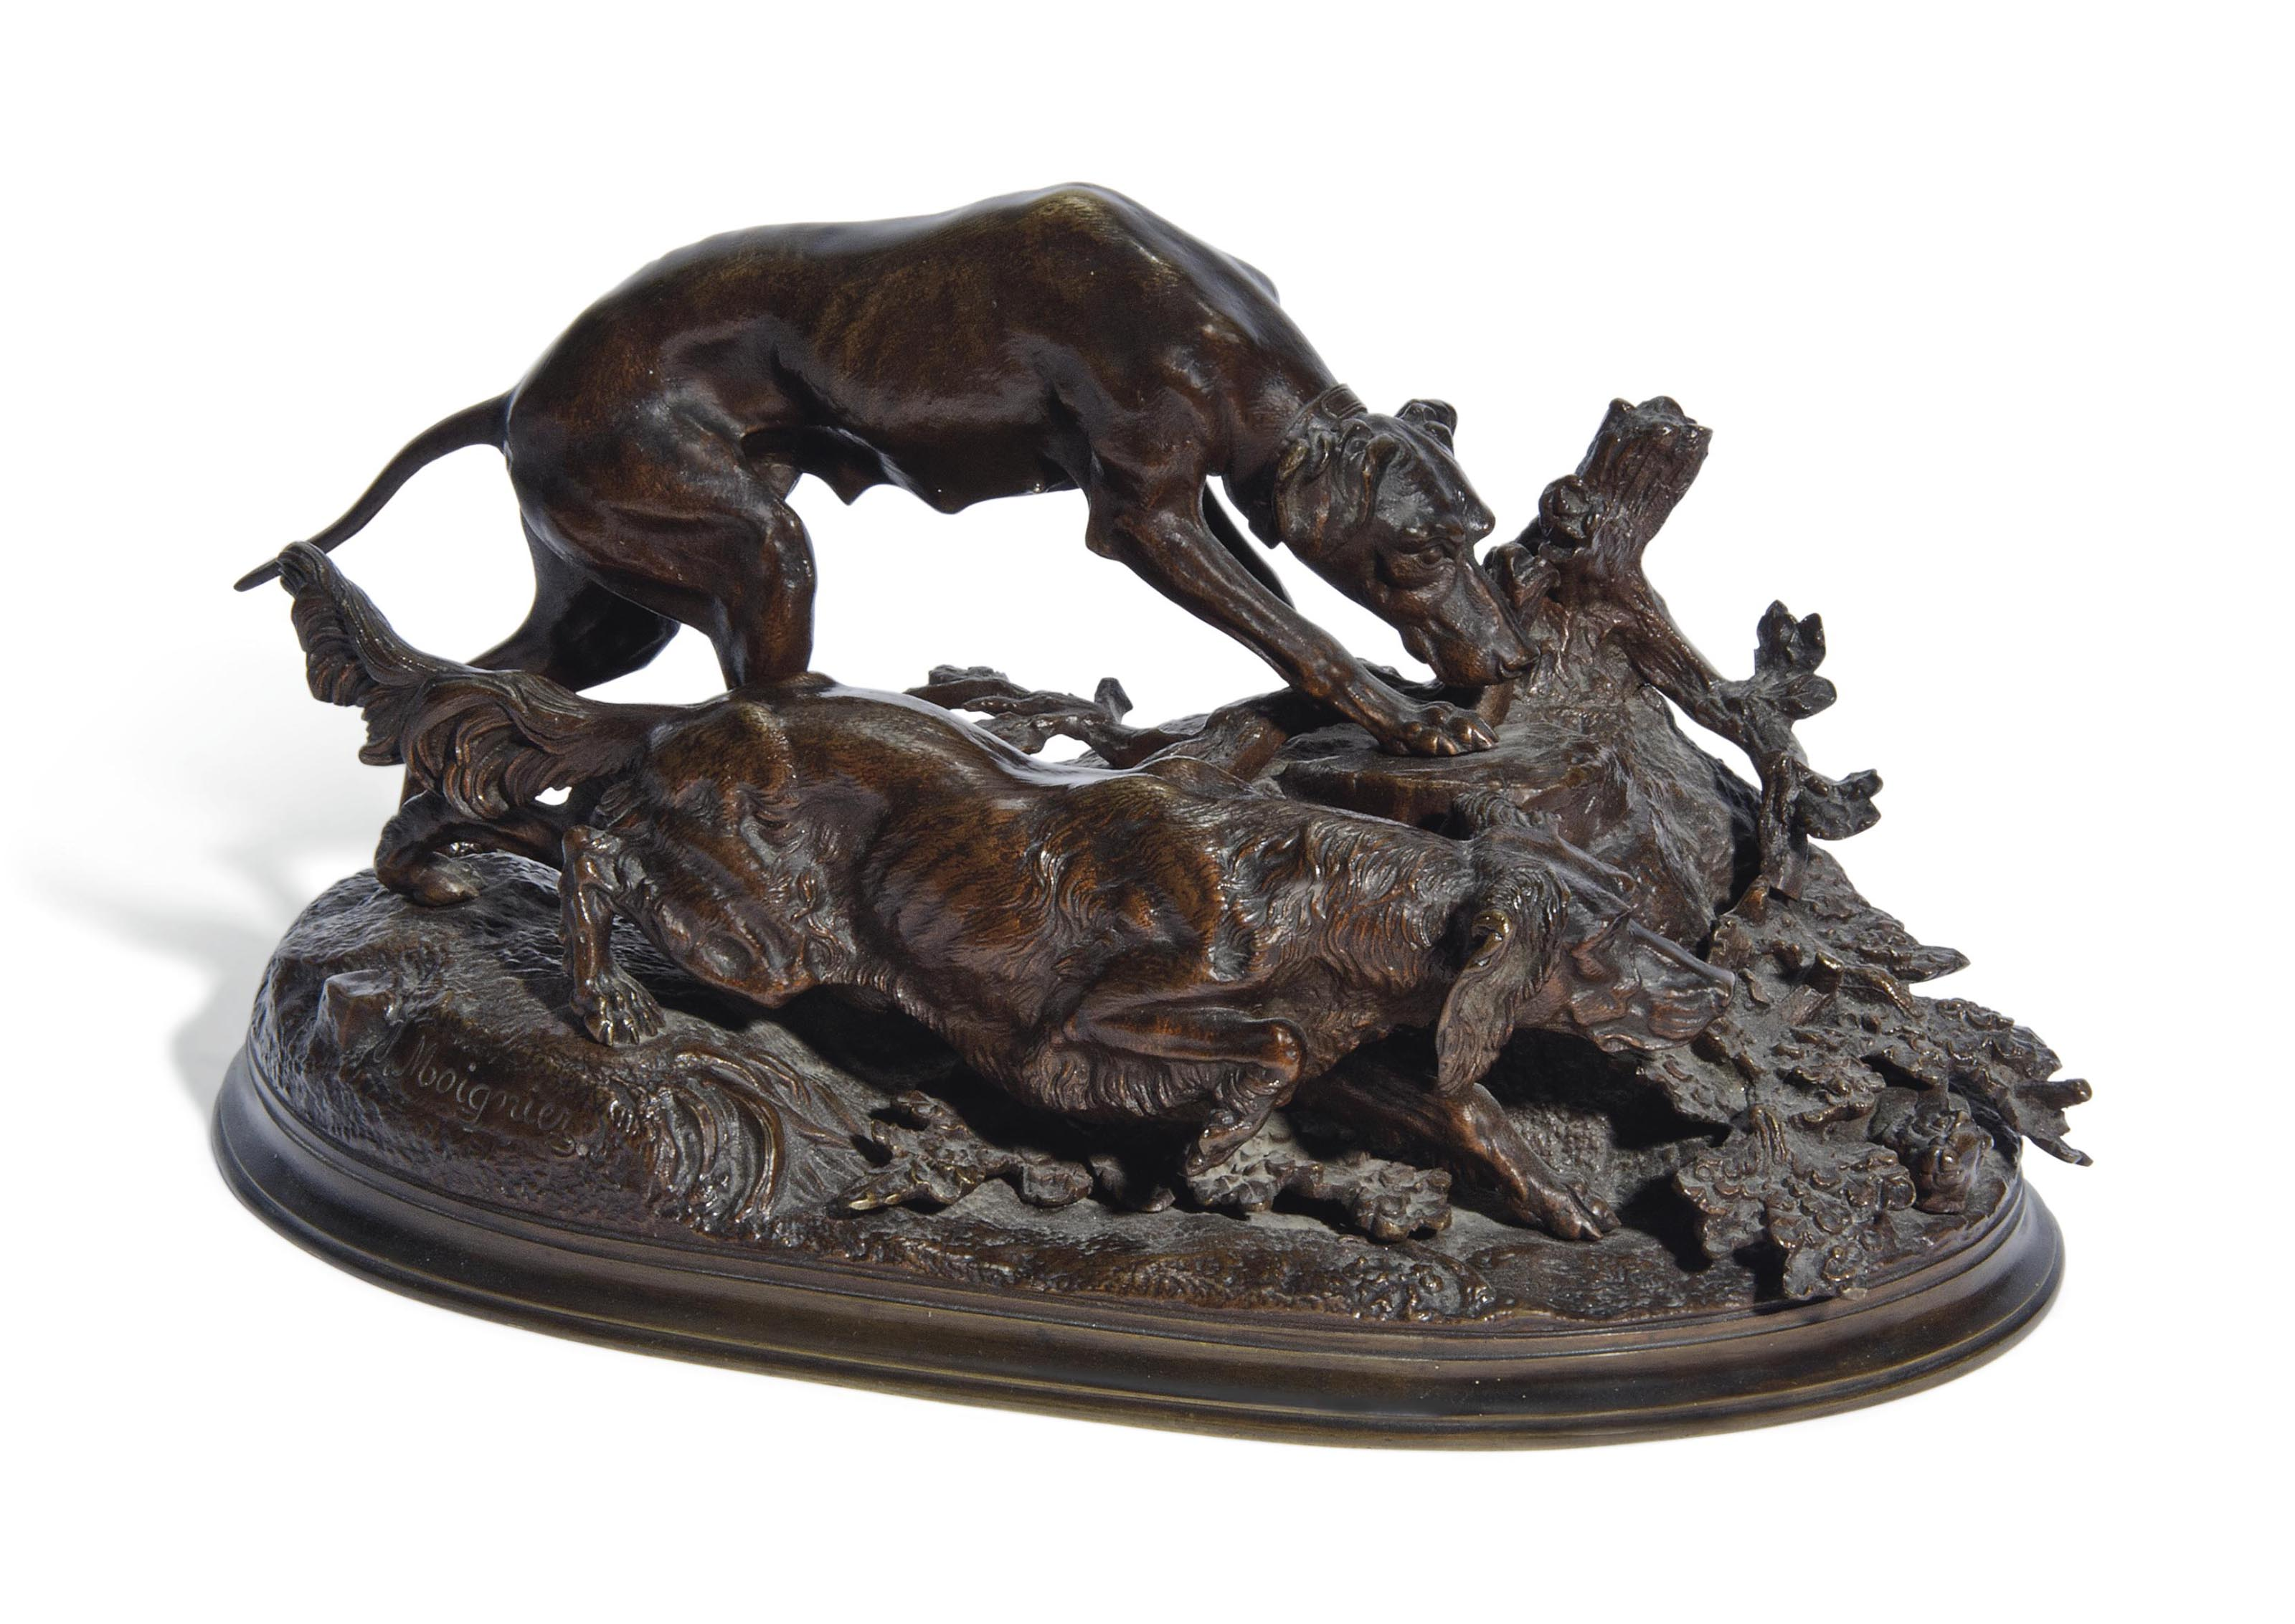 A FRENCH BRONZE GROUP OF A SETTER, A POINTER AND A HARE